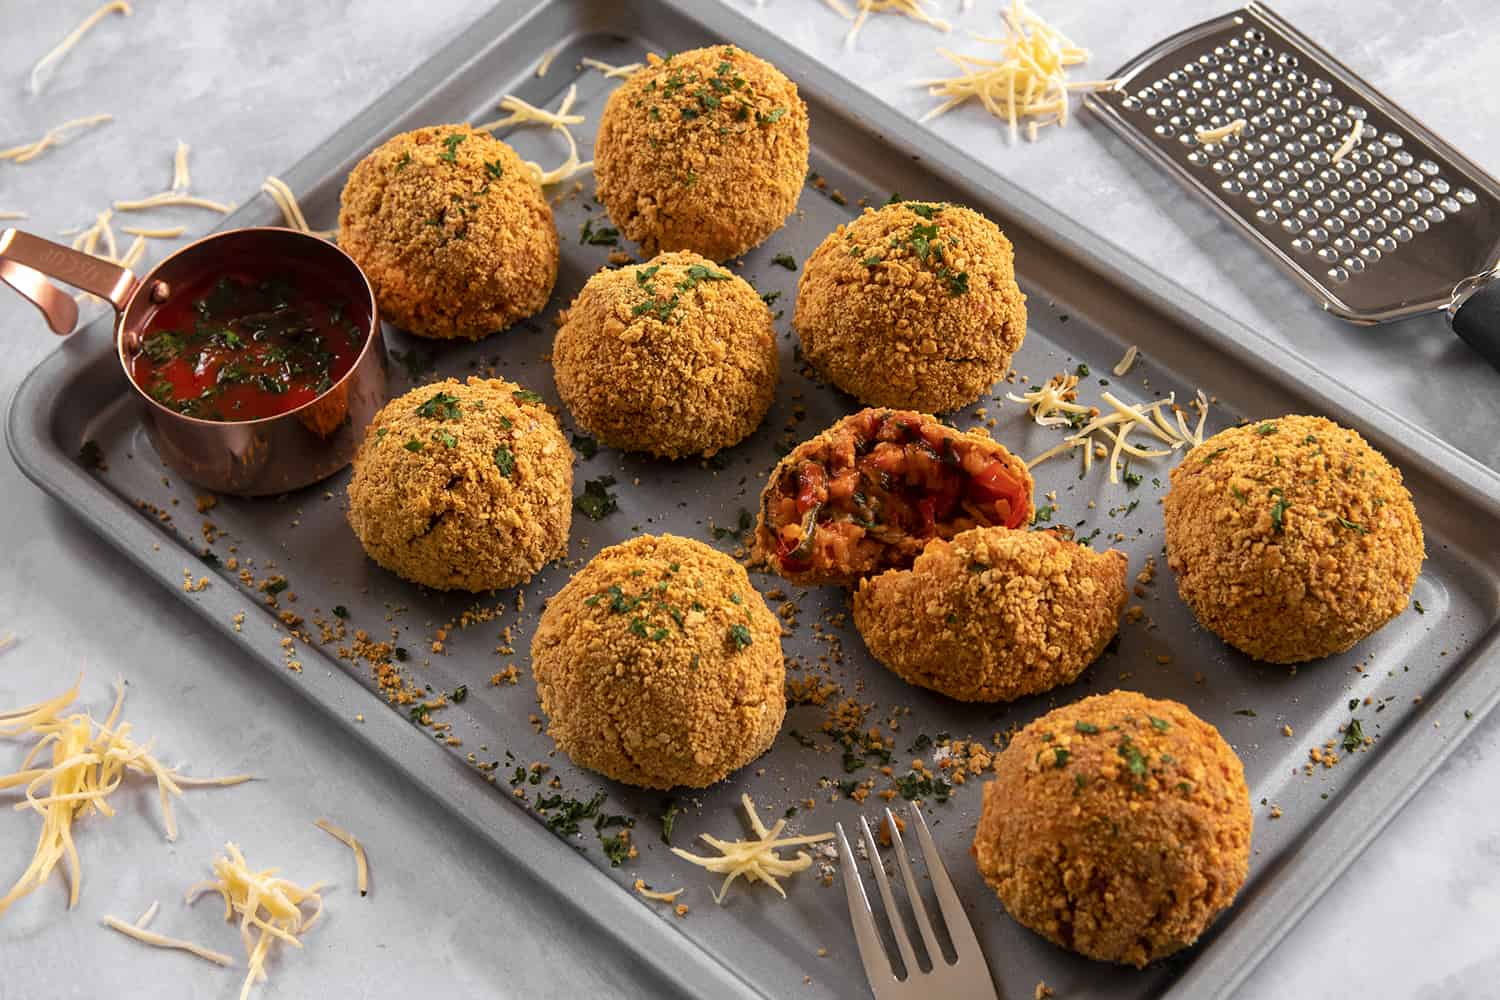 Oven-Baked Gluten Free Arancini Recipe - no frying required!